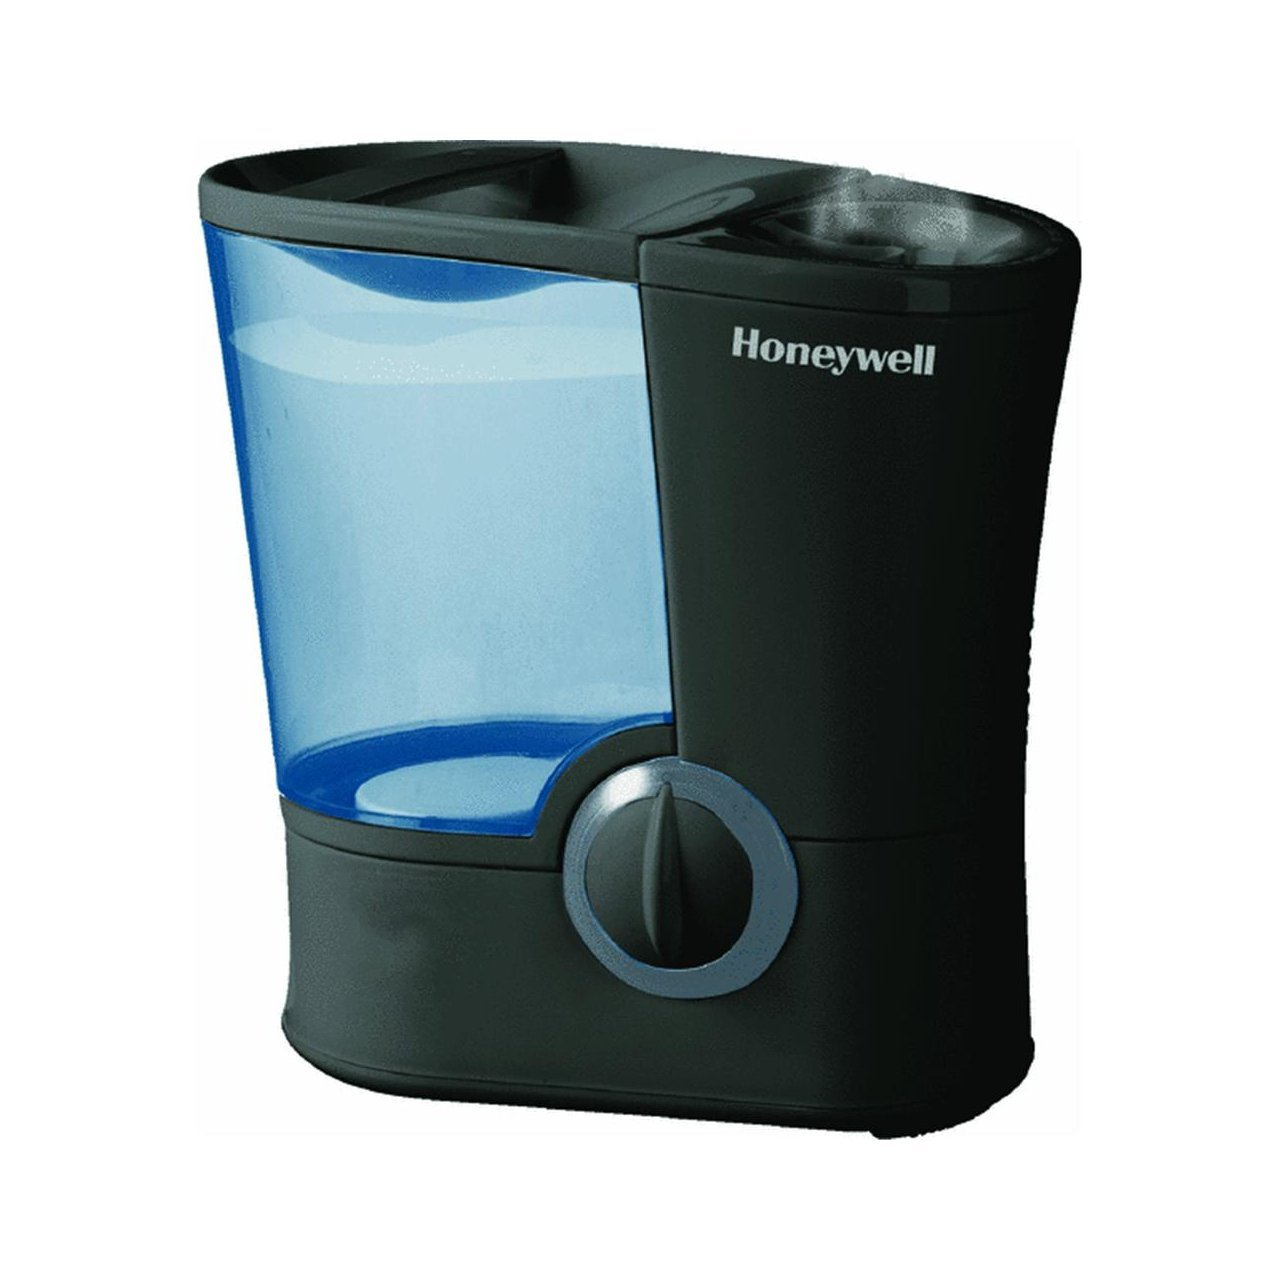 humidifiers Honeywell HWM 950 Filter Free Warm Moisture Humidifier #144A85